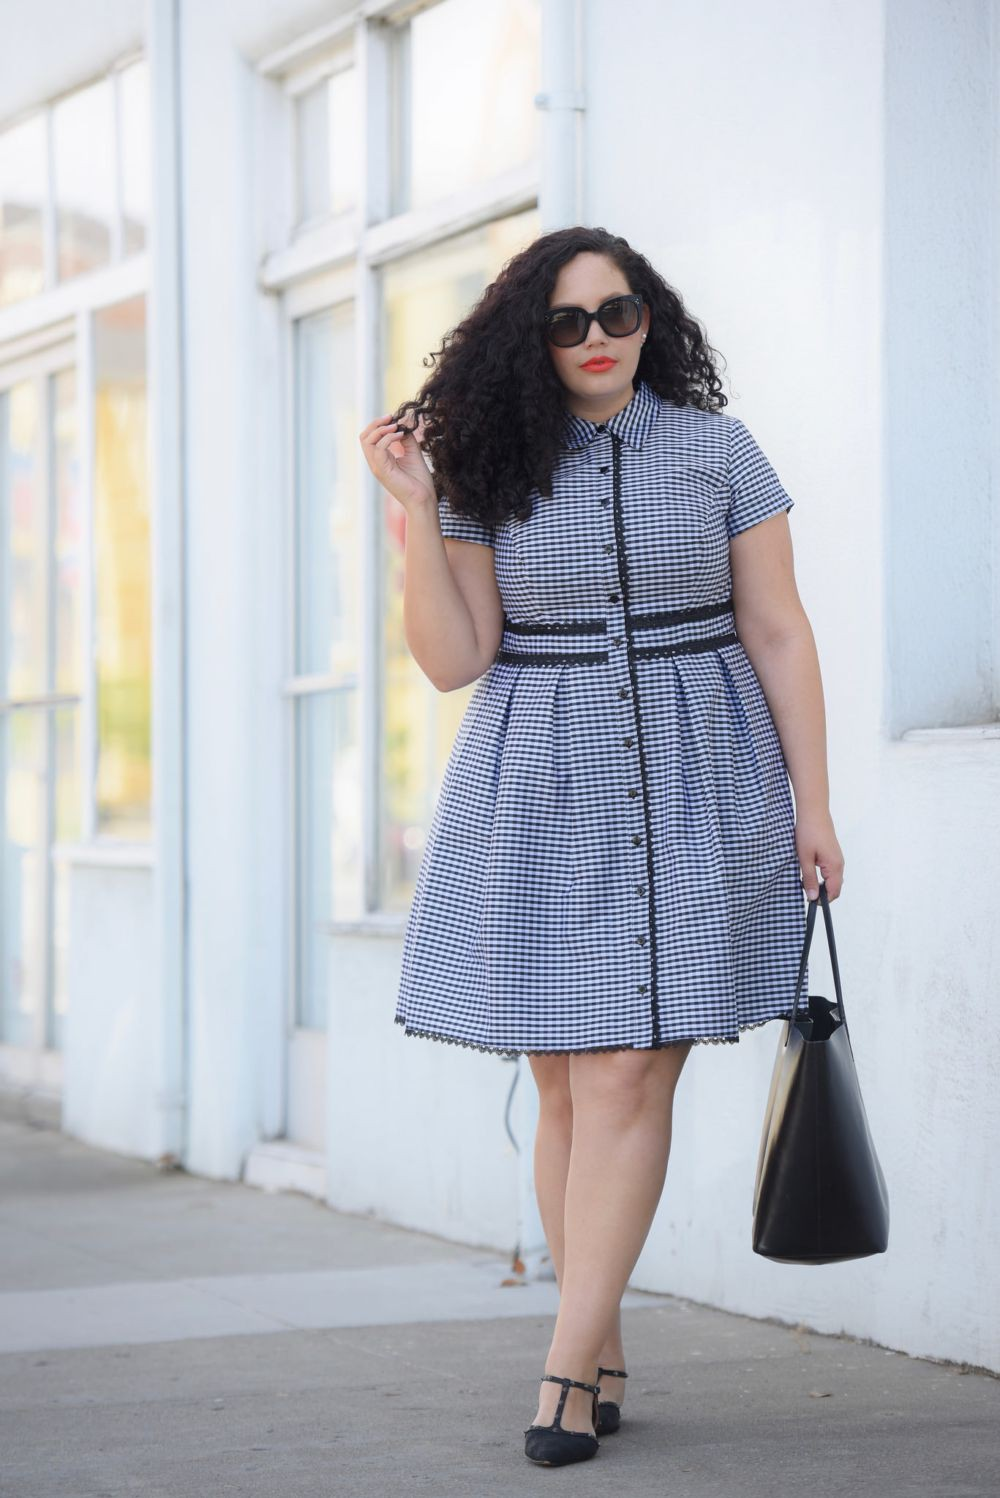 Plus Size Workwear Outfits, Dress with lace, Tanesha Awasthi